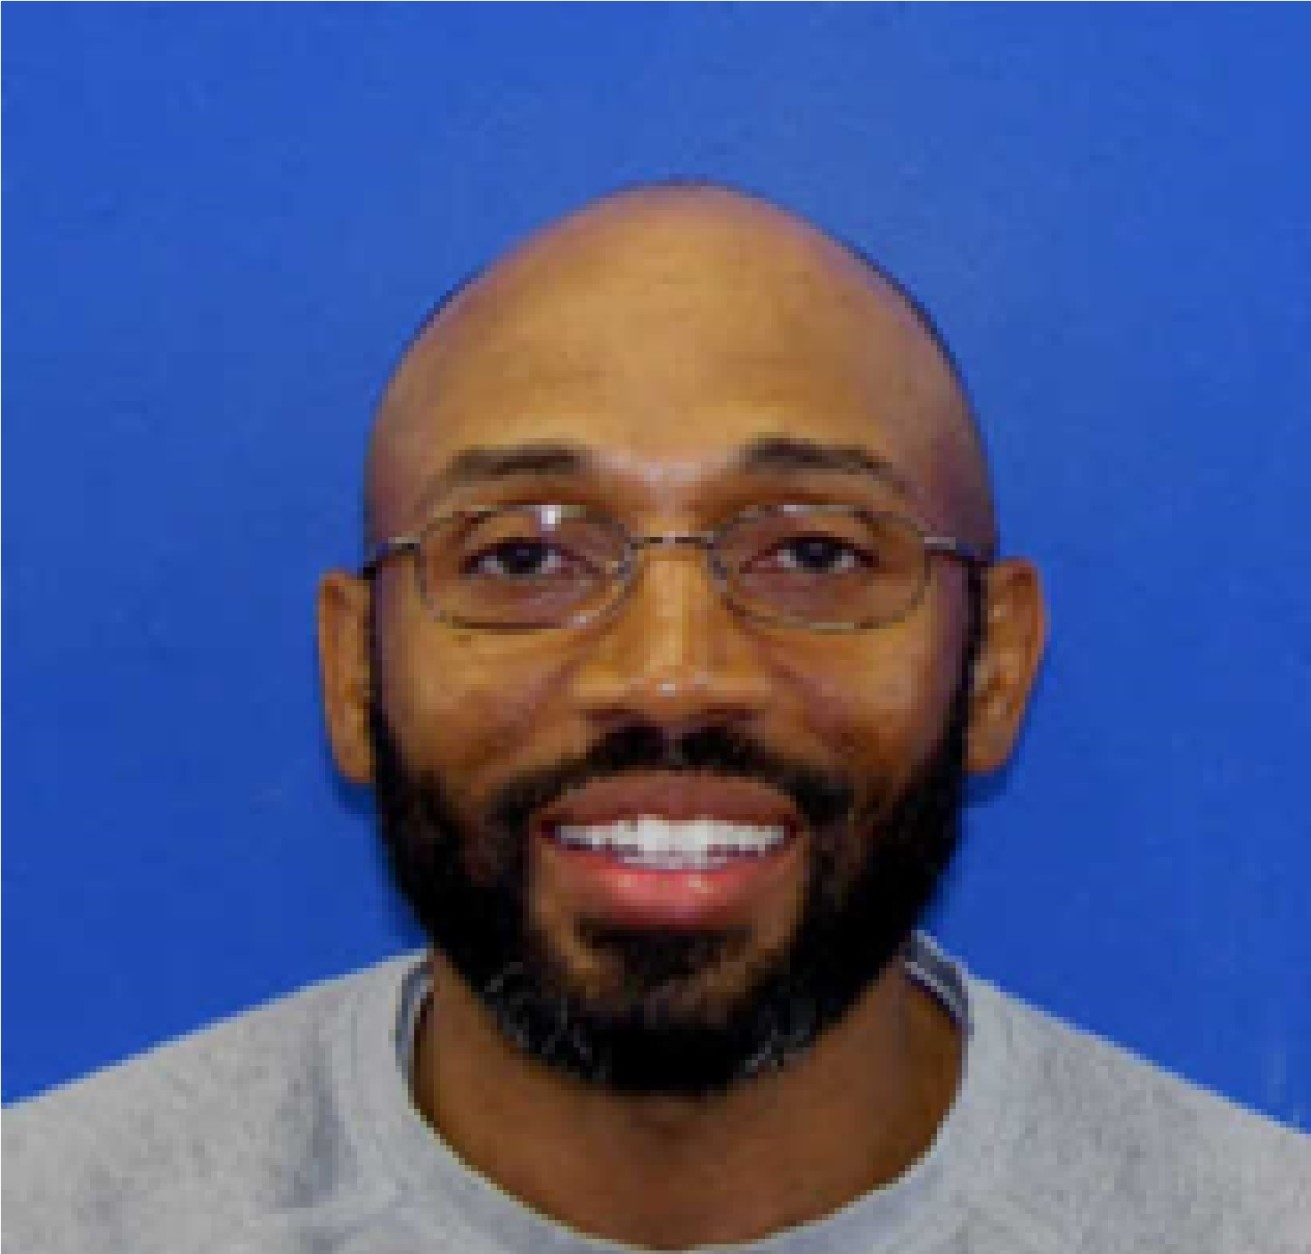 Clyde Peterson, 44, also faces felony theft and handgun related charges. (Courtesy Prince George's County Police Department)